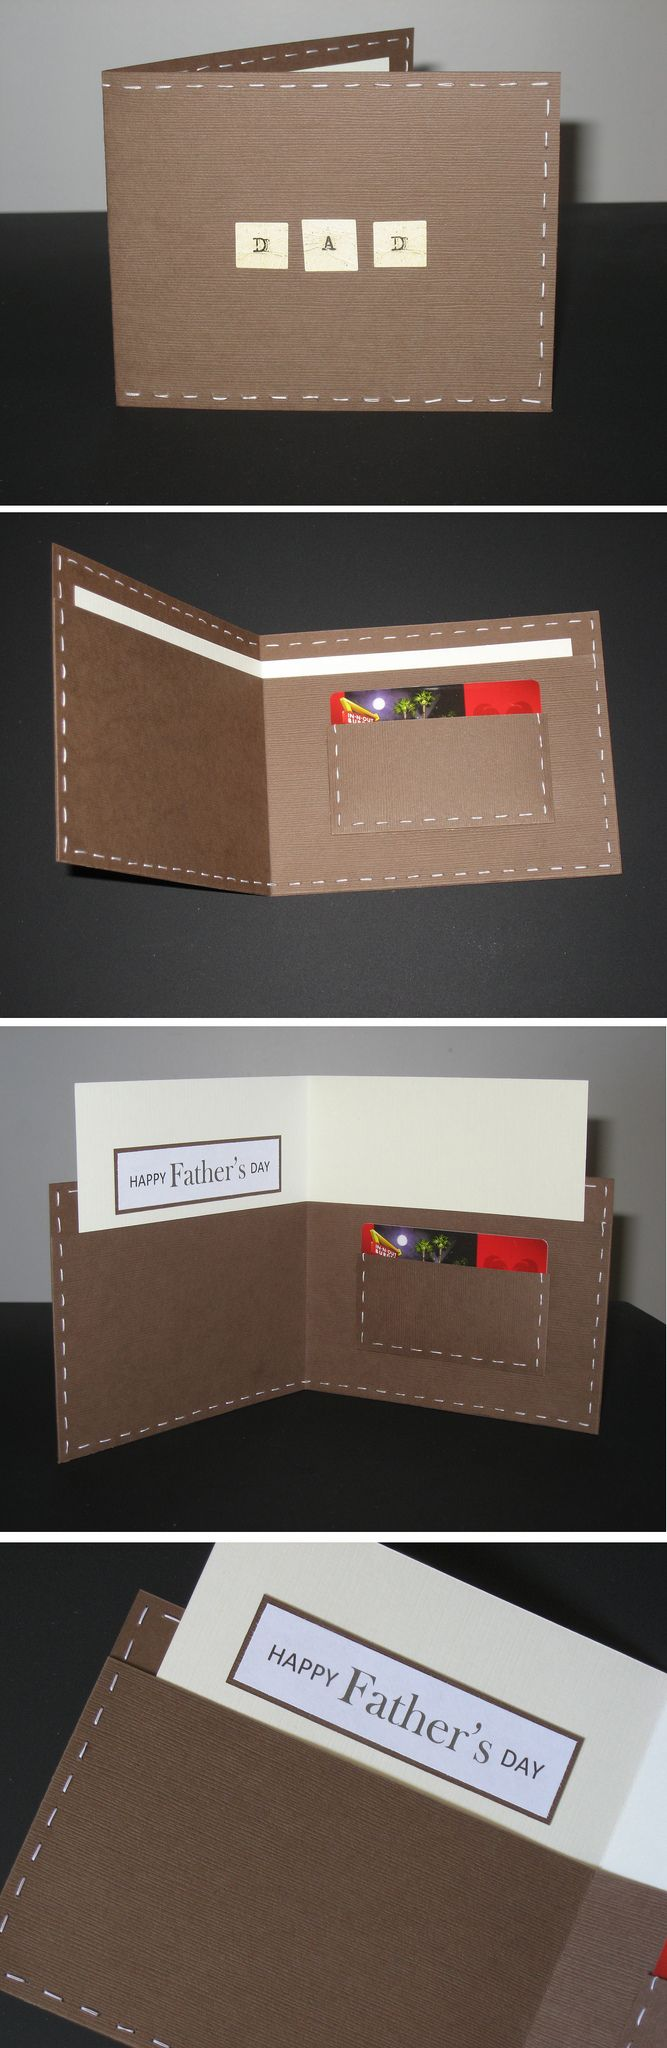 Father's Day Wallet Card   Flickr - Photo Sharing!